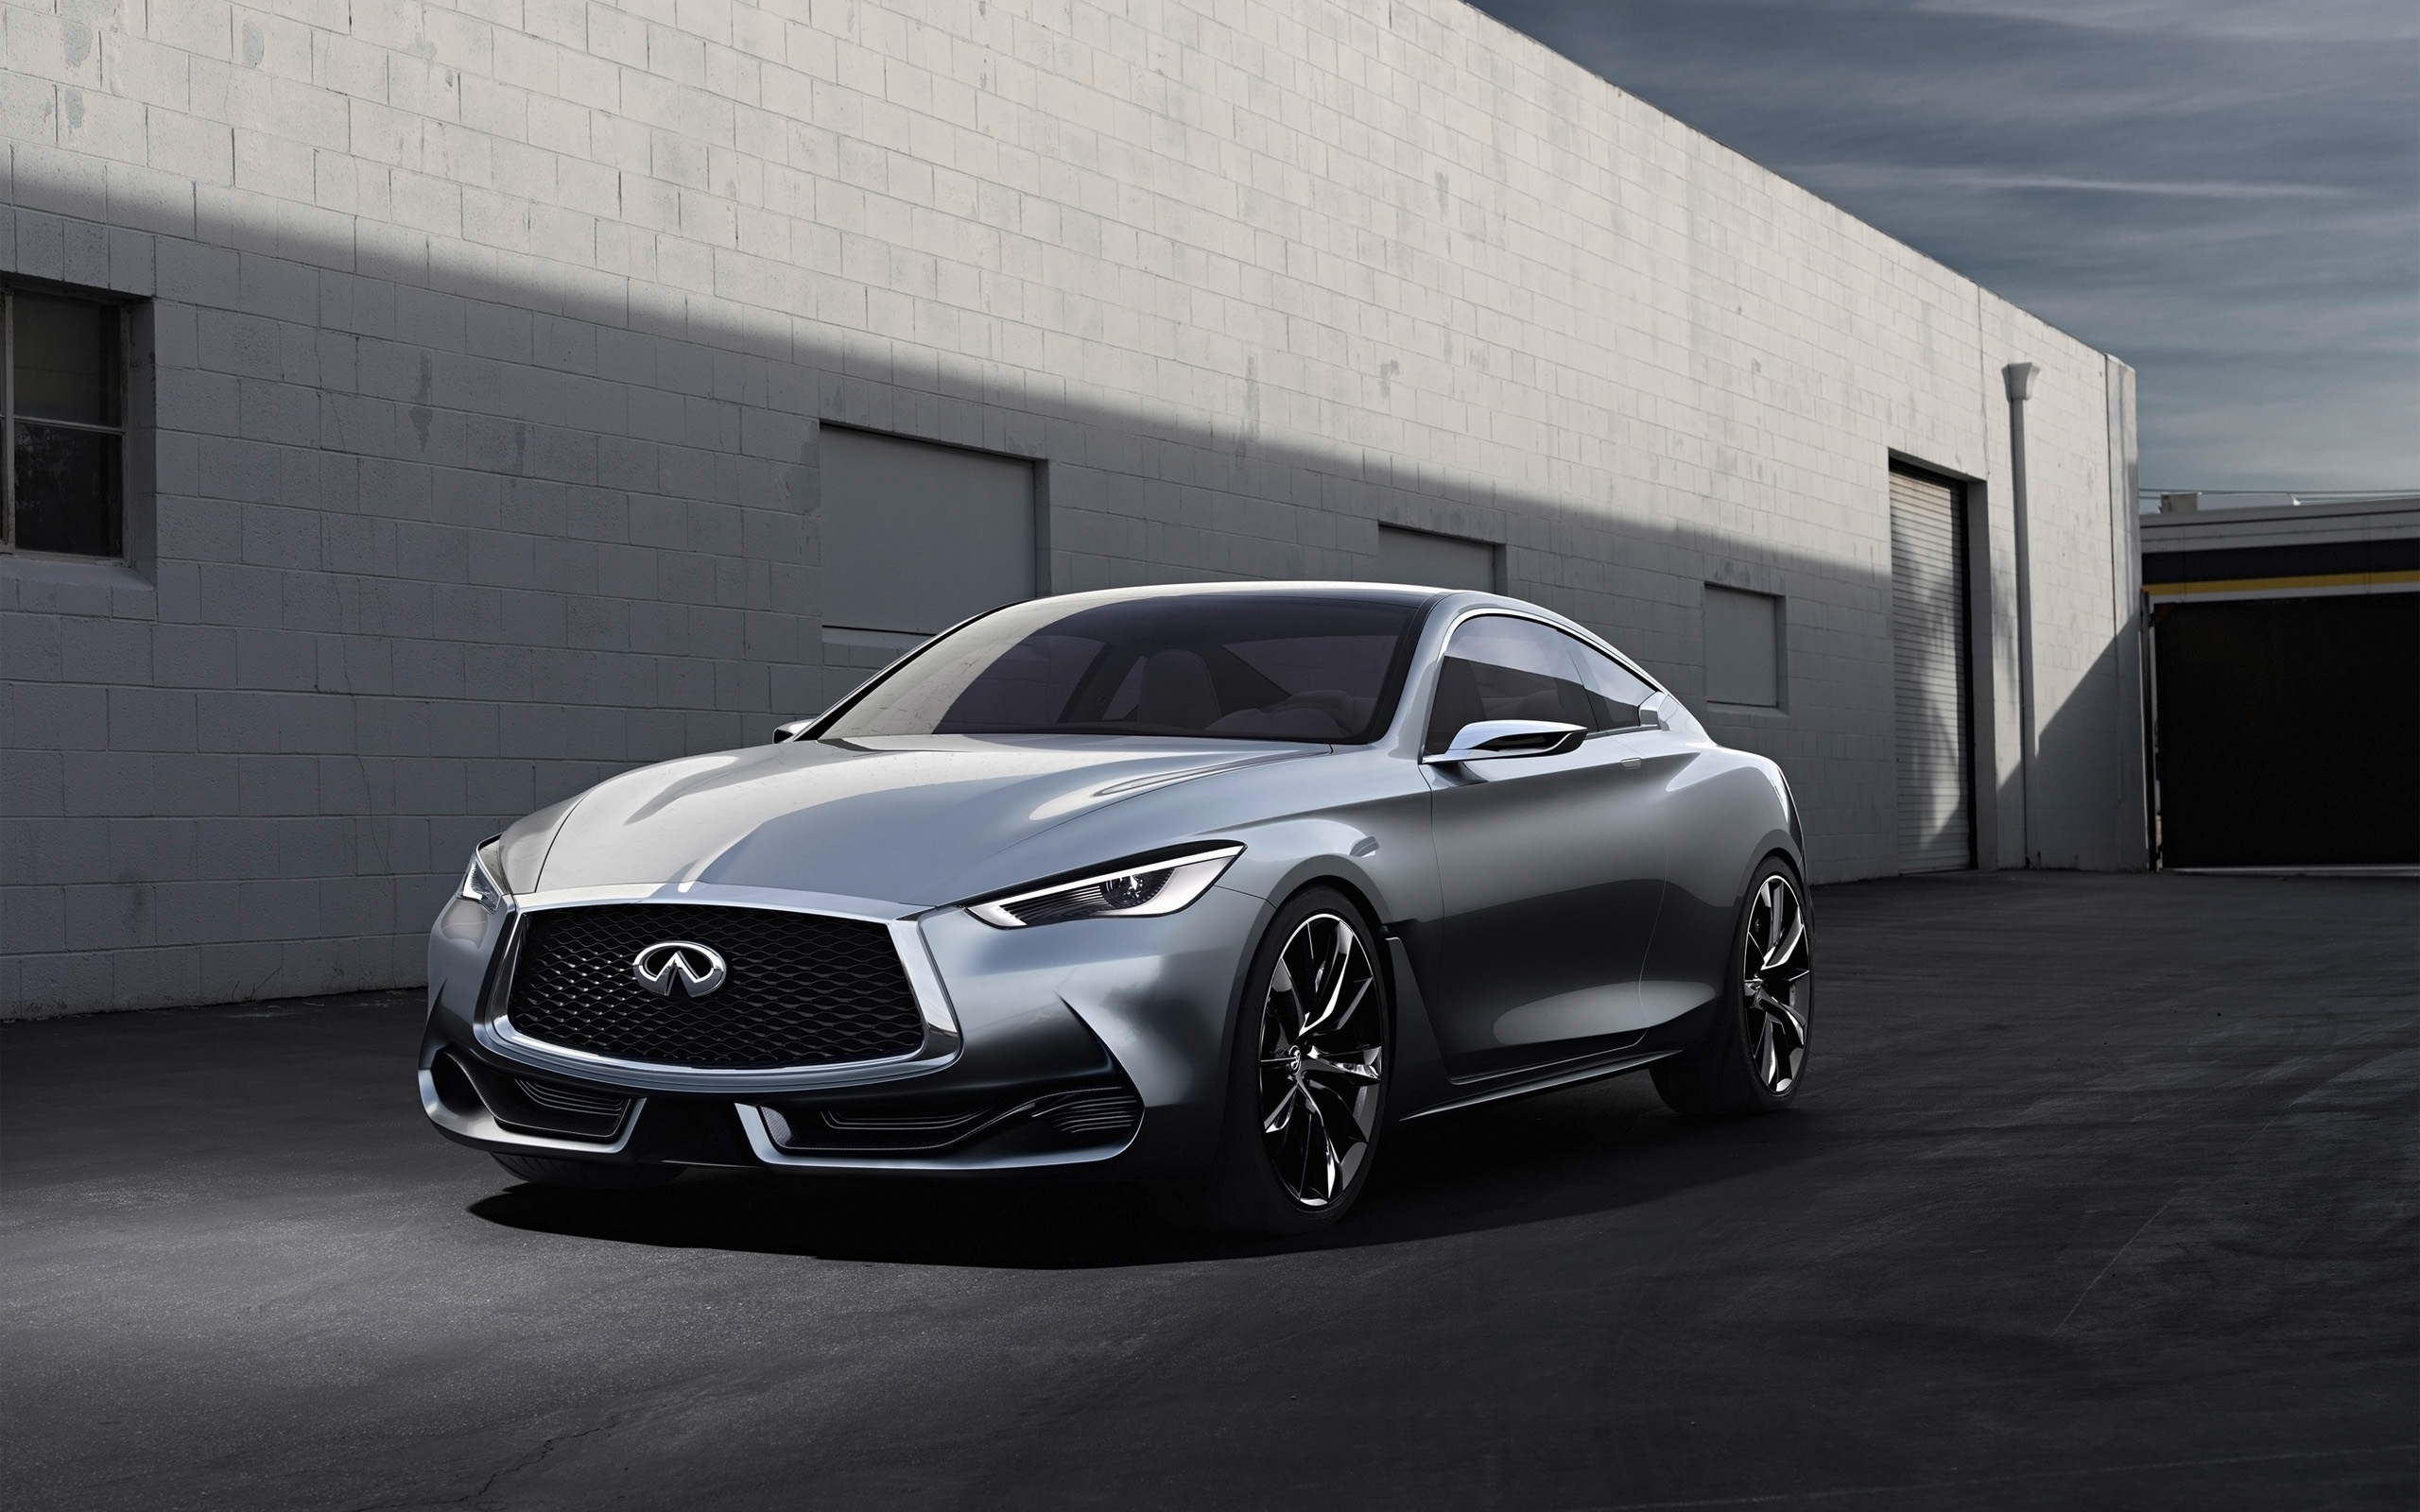 Infiniti Q60 Wallpapers and Background Images   stmednet 2560x1600